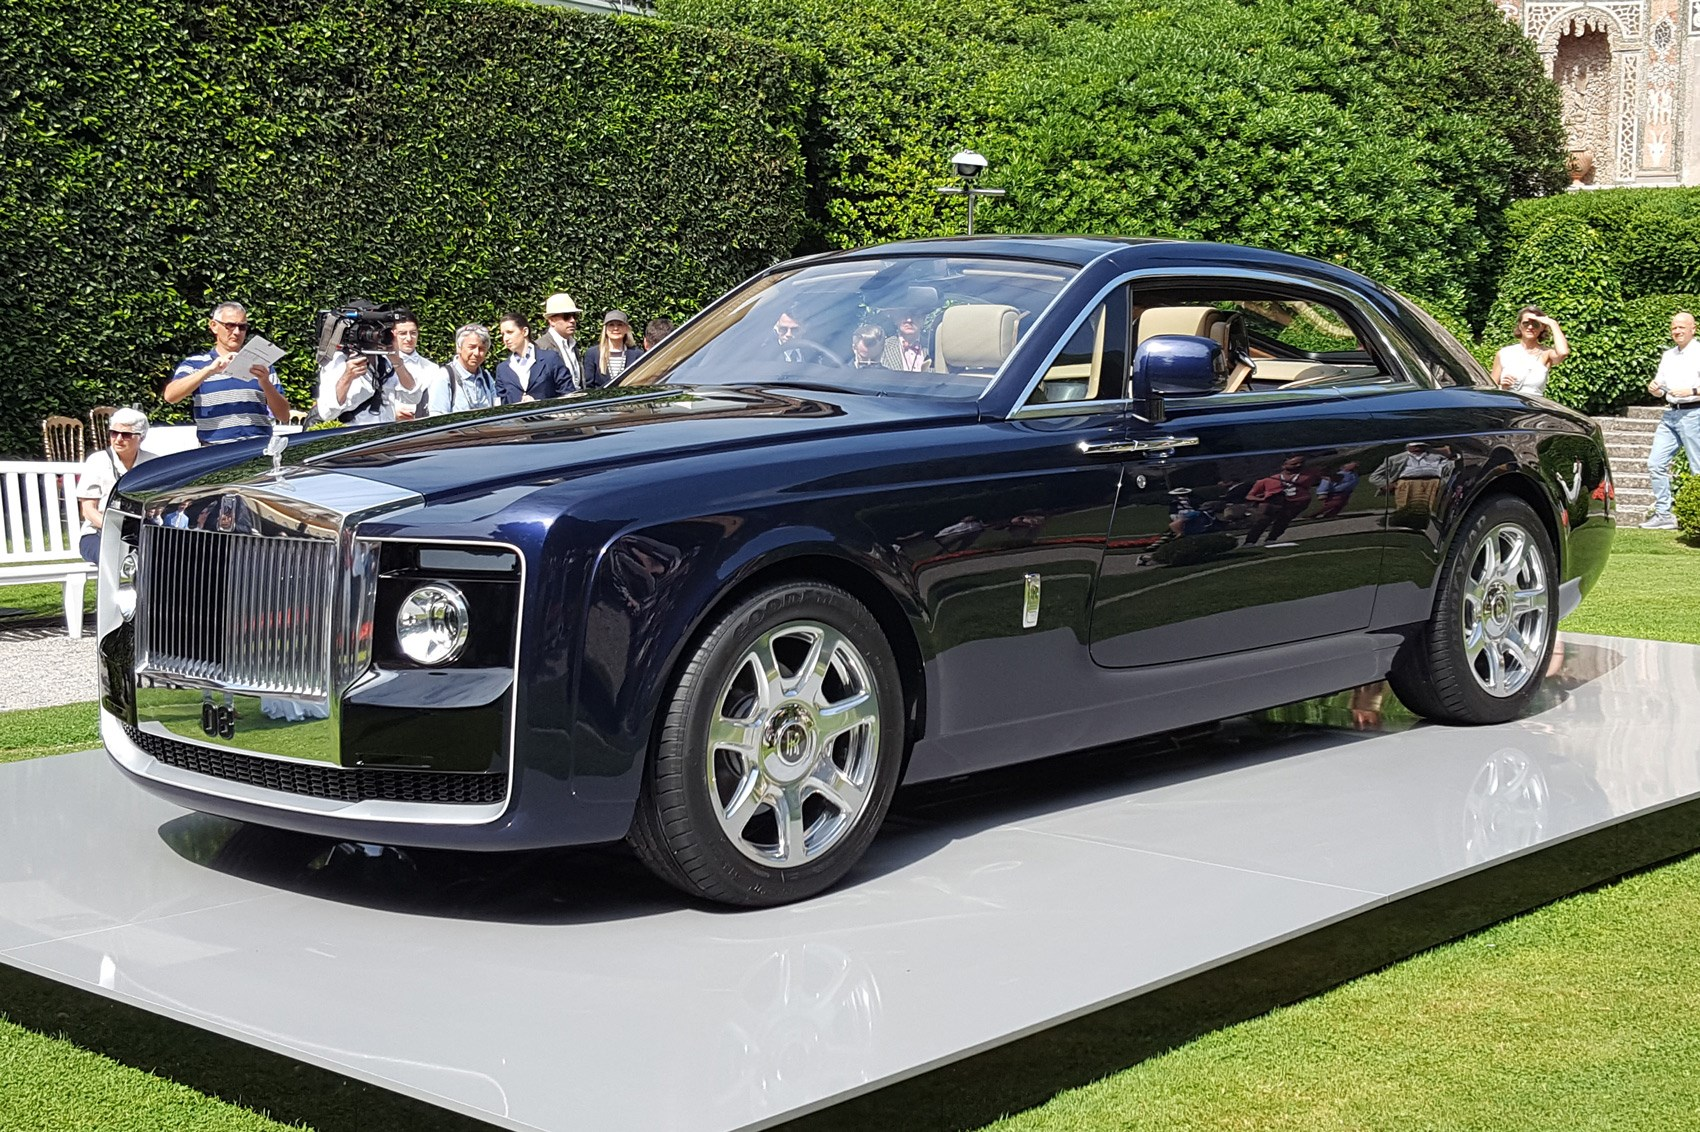 rolls royce sweptail 39 probably the most expensive car ever 39 by car magazine. Black Bedroom Furniture Sets. Home Design Ideas